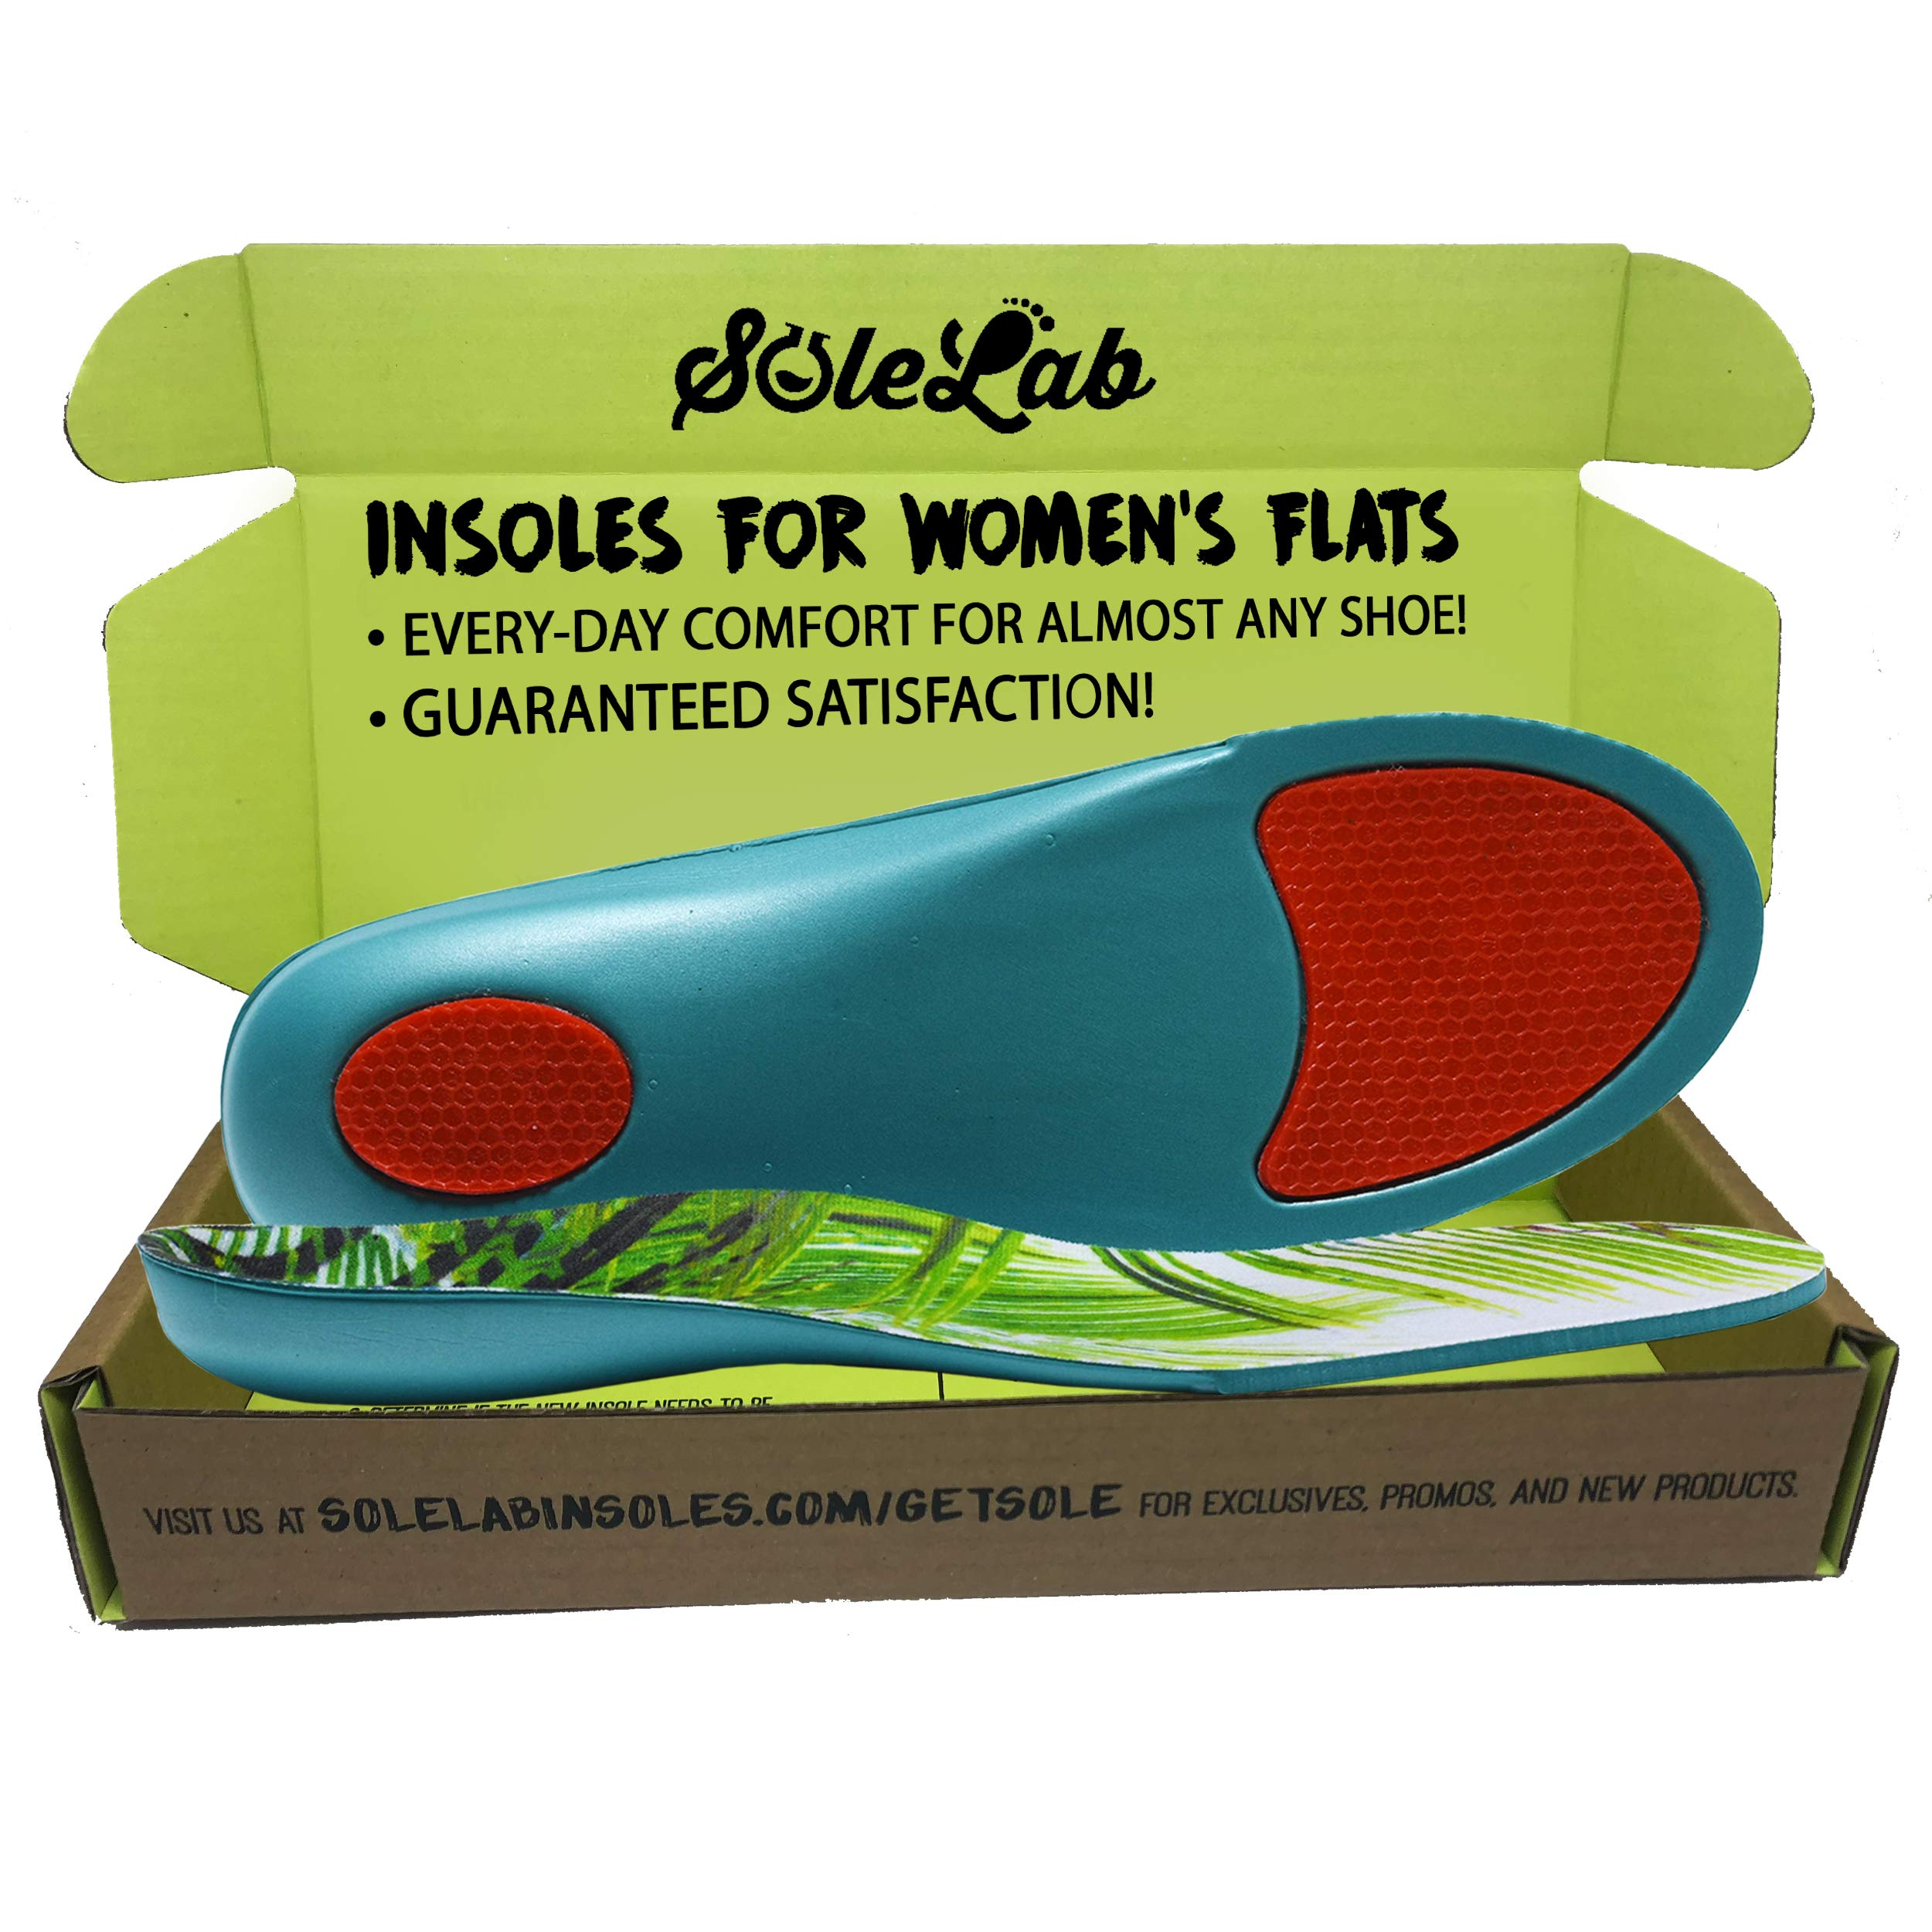 Insoles for Womens Flats :: Full Length :: Comfort Orthotic :: Replacement Inserts with Adaptive Arch and Gel Insert, Size (6.5, 7, 7.5, 8 or EU 37, 38, 39)